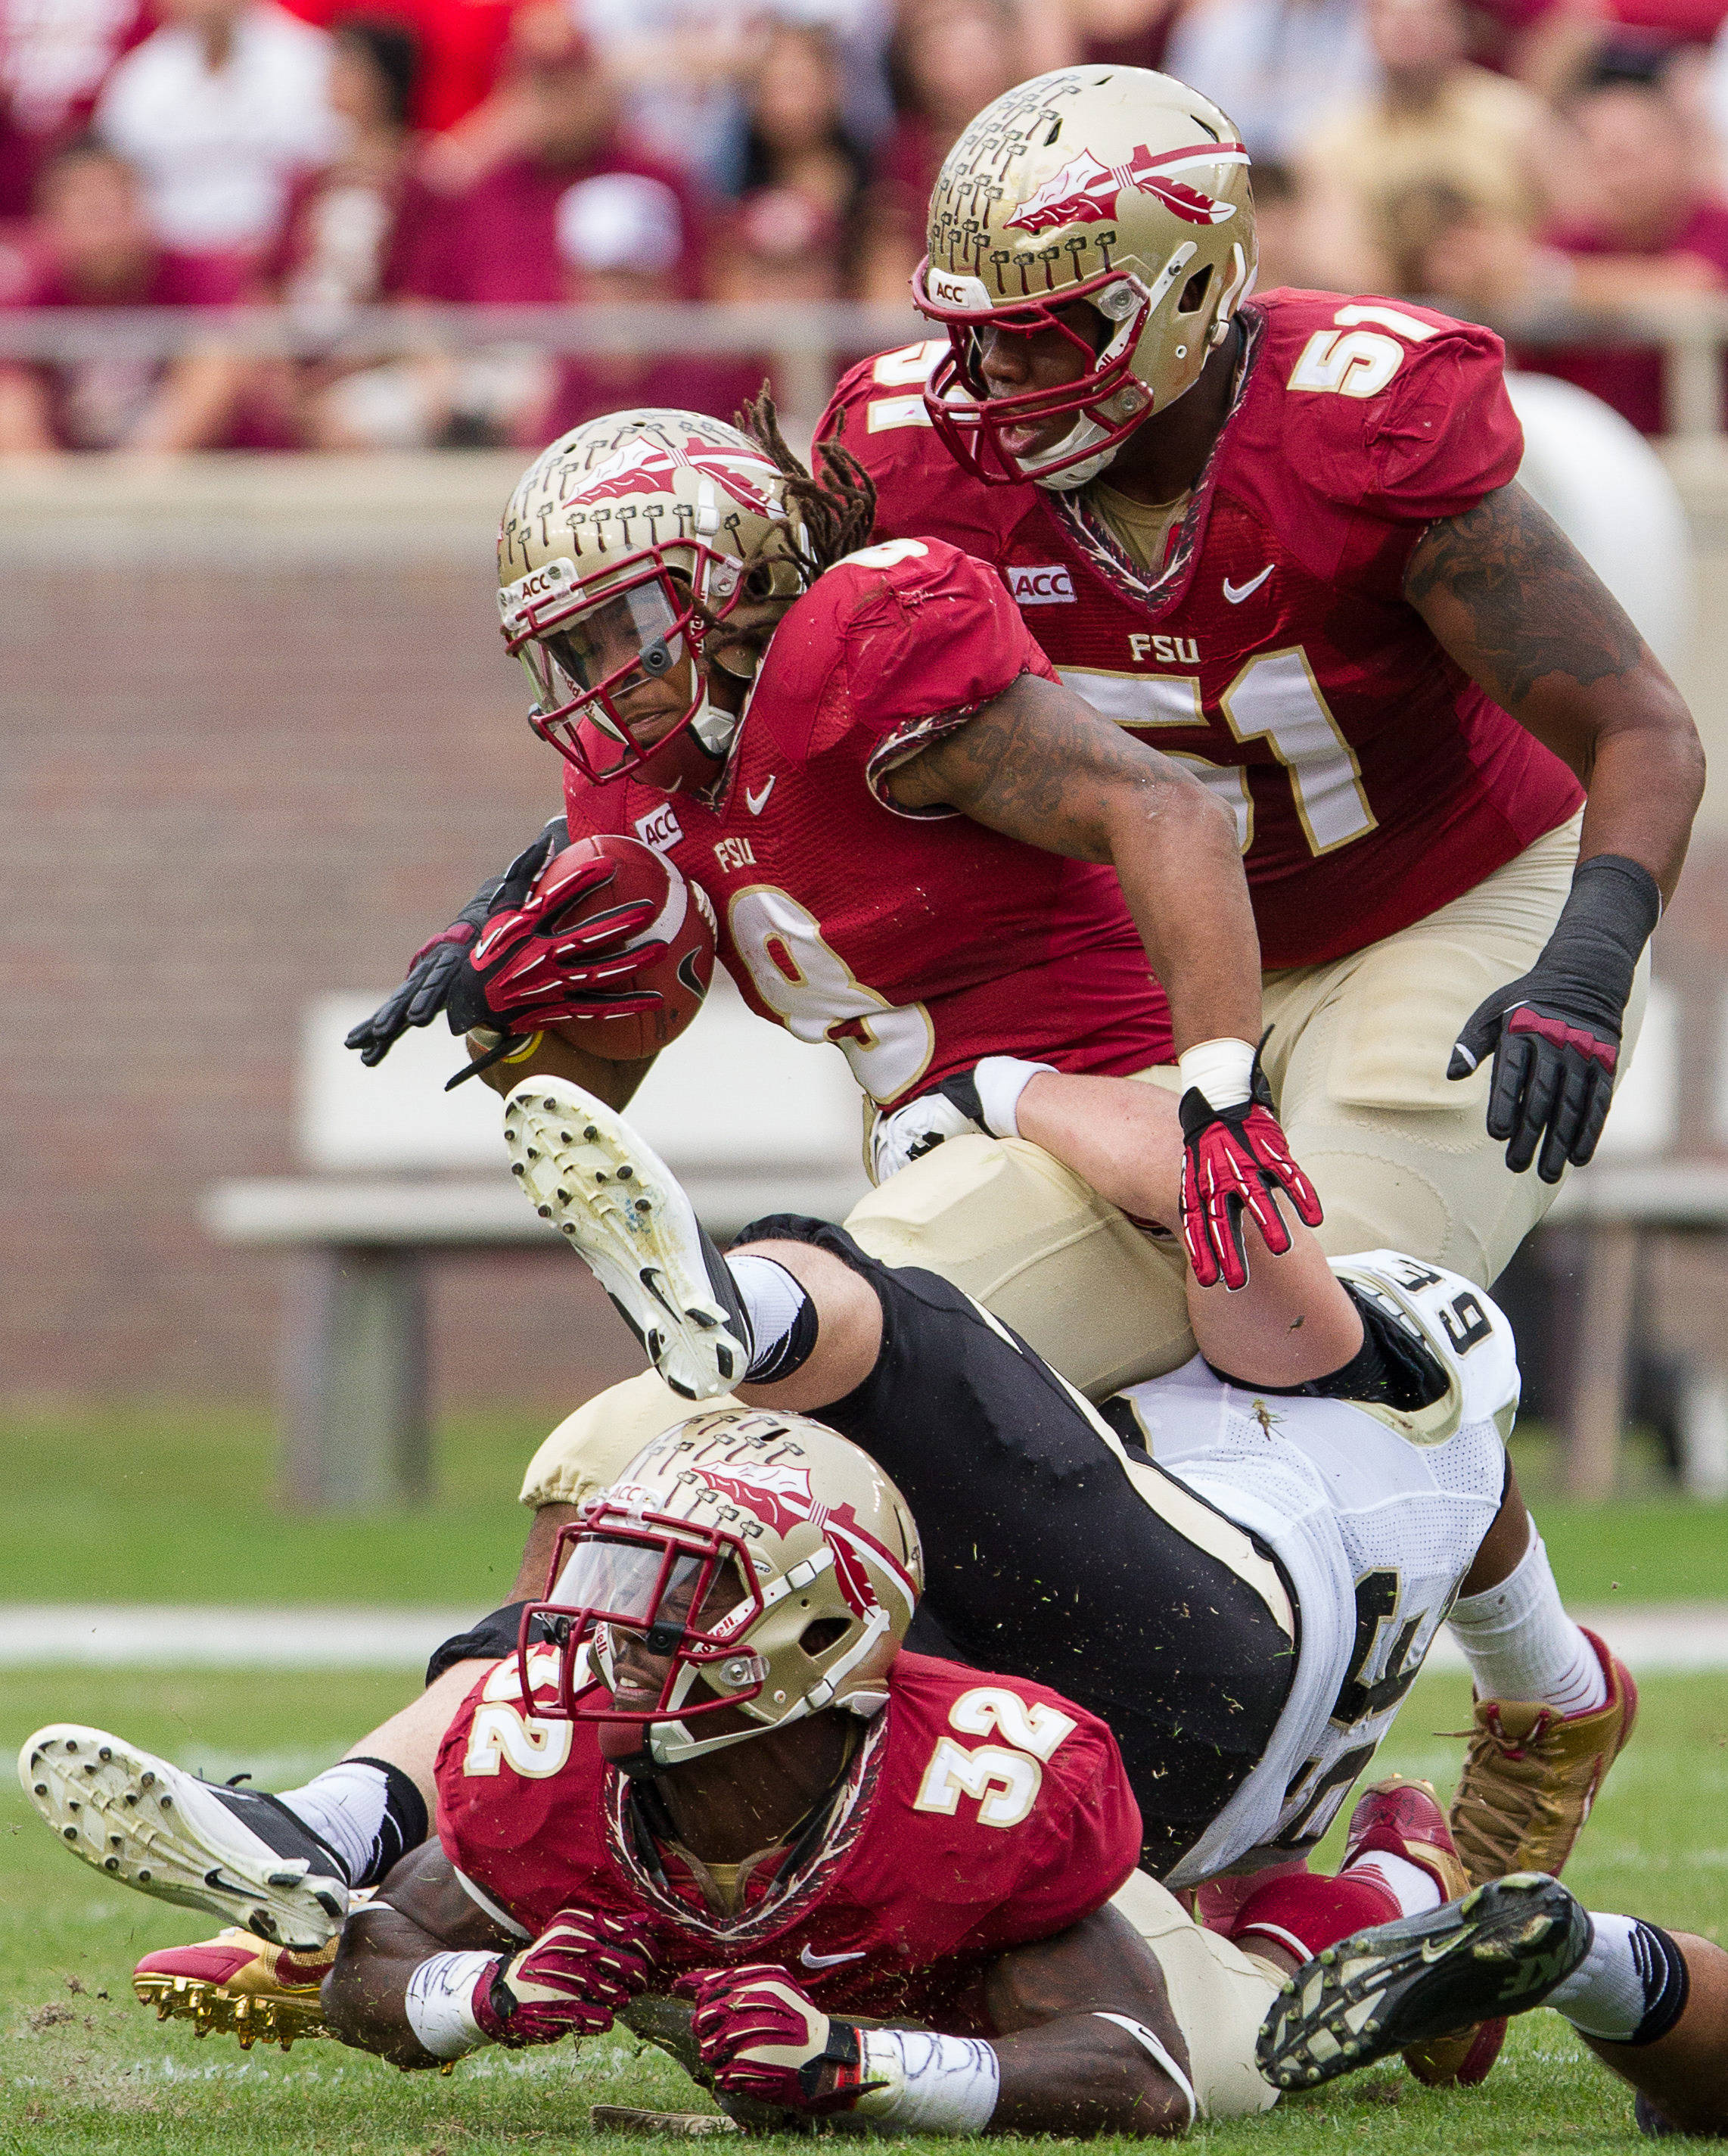 Devonta Freeman (8) is tackled during FSU Football's 80-14 victory over Idaho in Tallahassee, Fla on Saturday, November 23, 2013. Photos by Mike Schwarz.